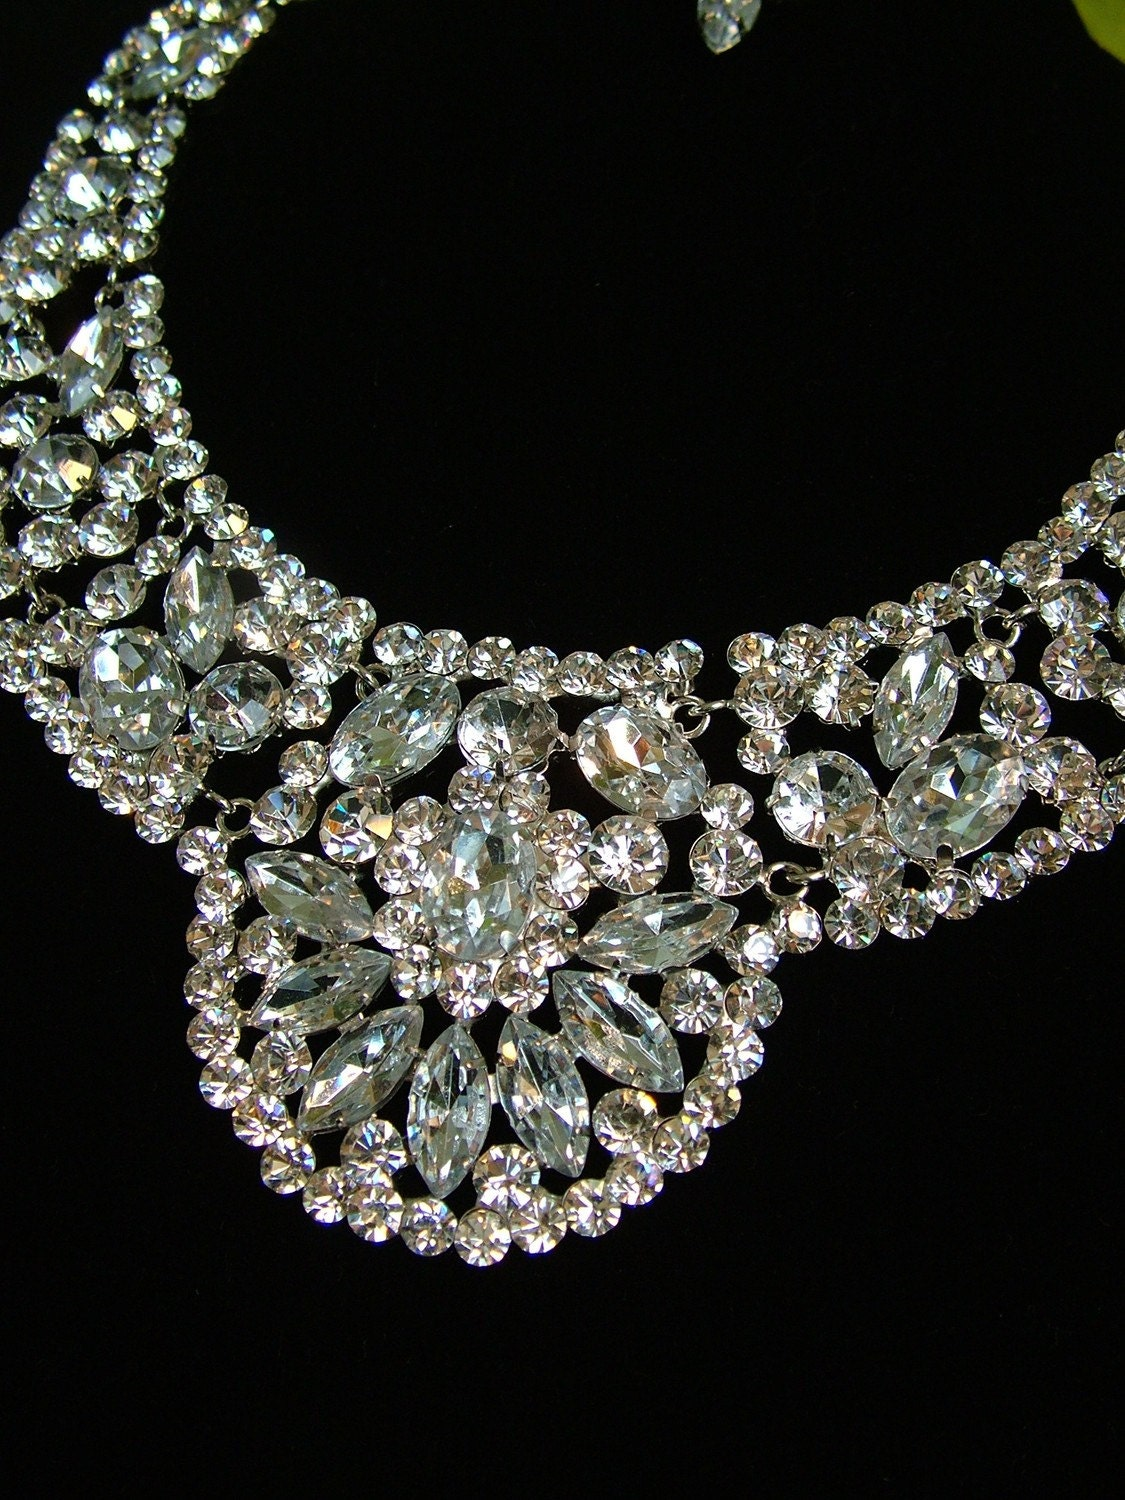 1930s rhinestone vintage inspired necklace jewelry with